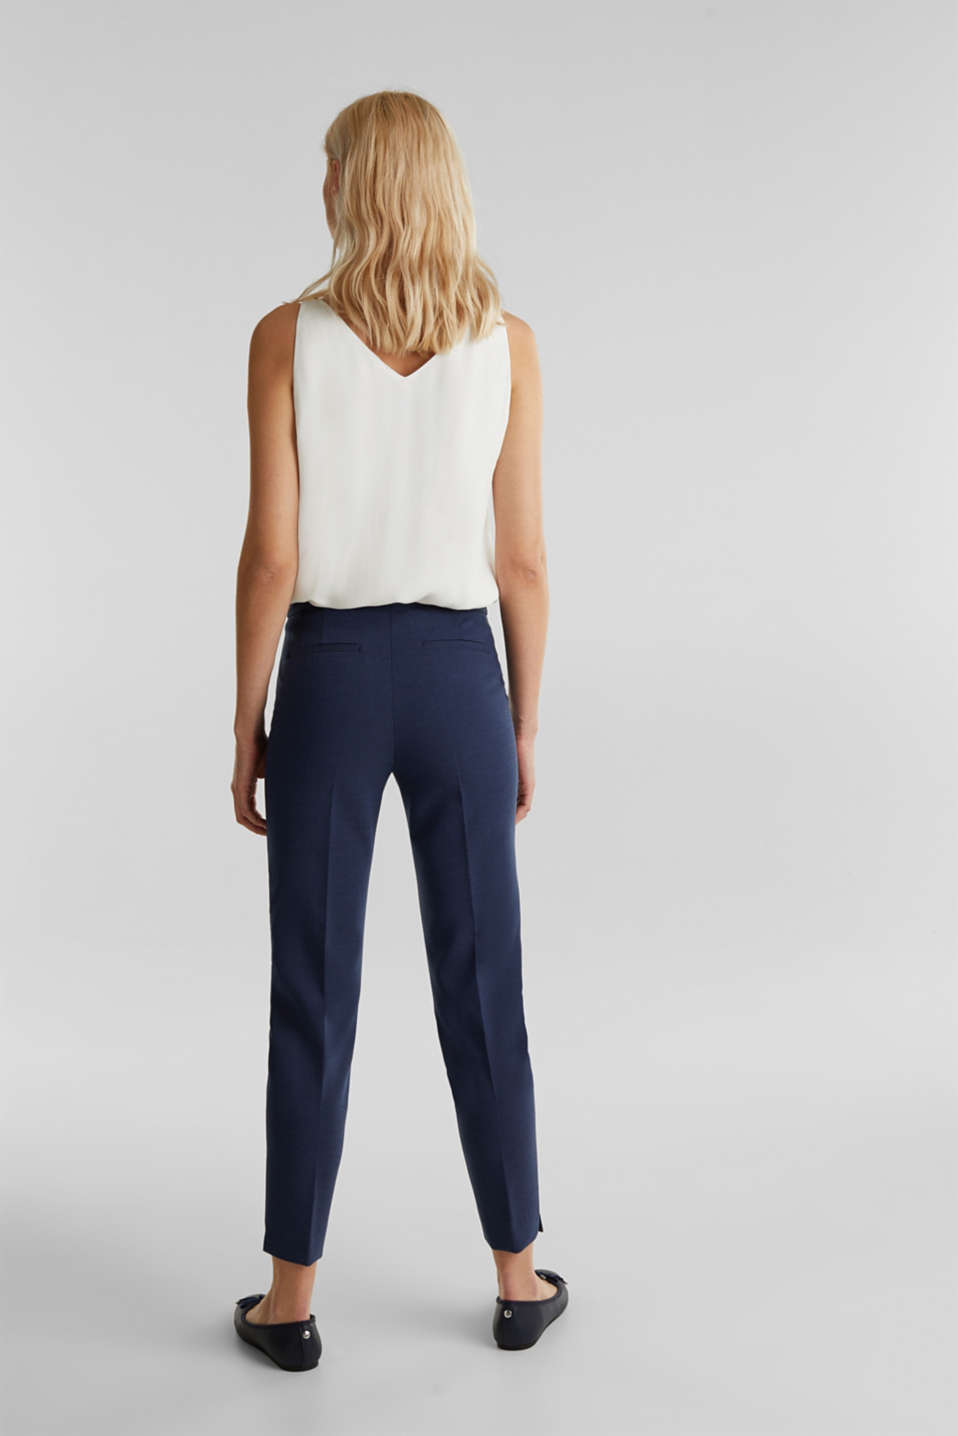 JERSEY mix + match trousers, GREY BLUE 5, detail image number 3